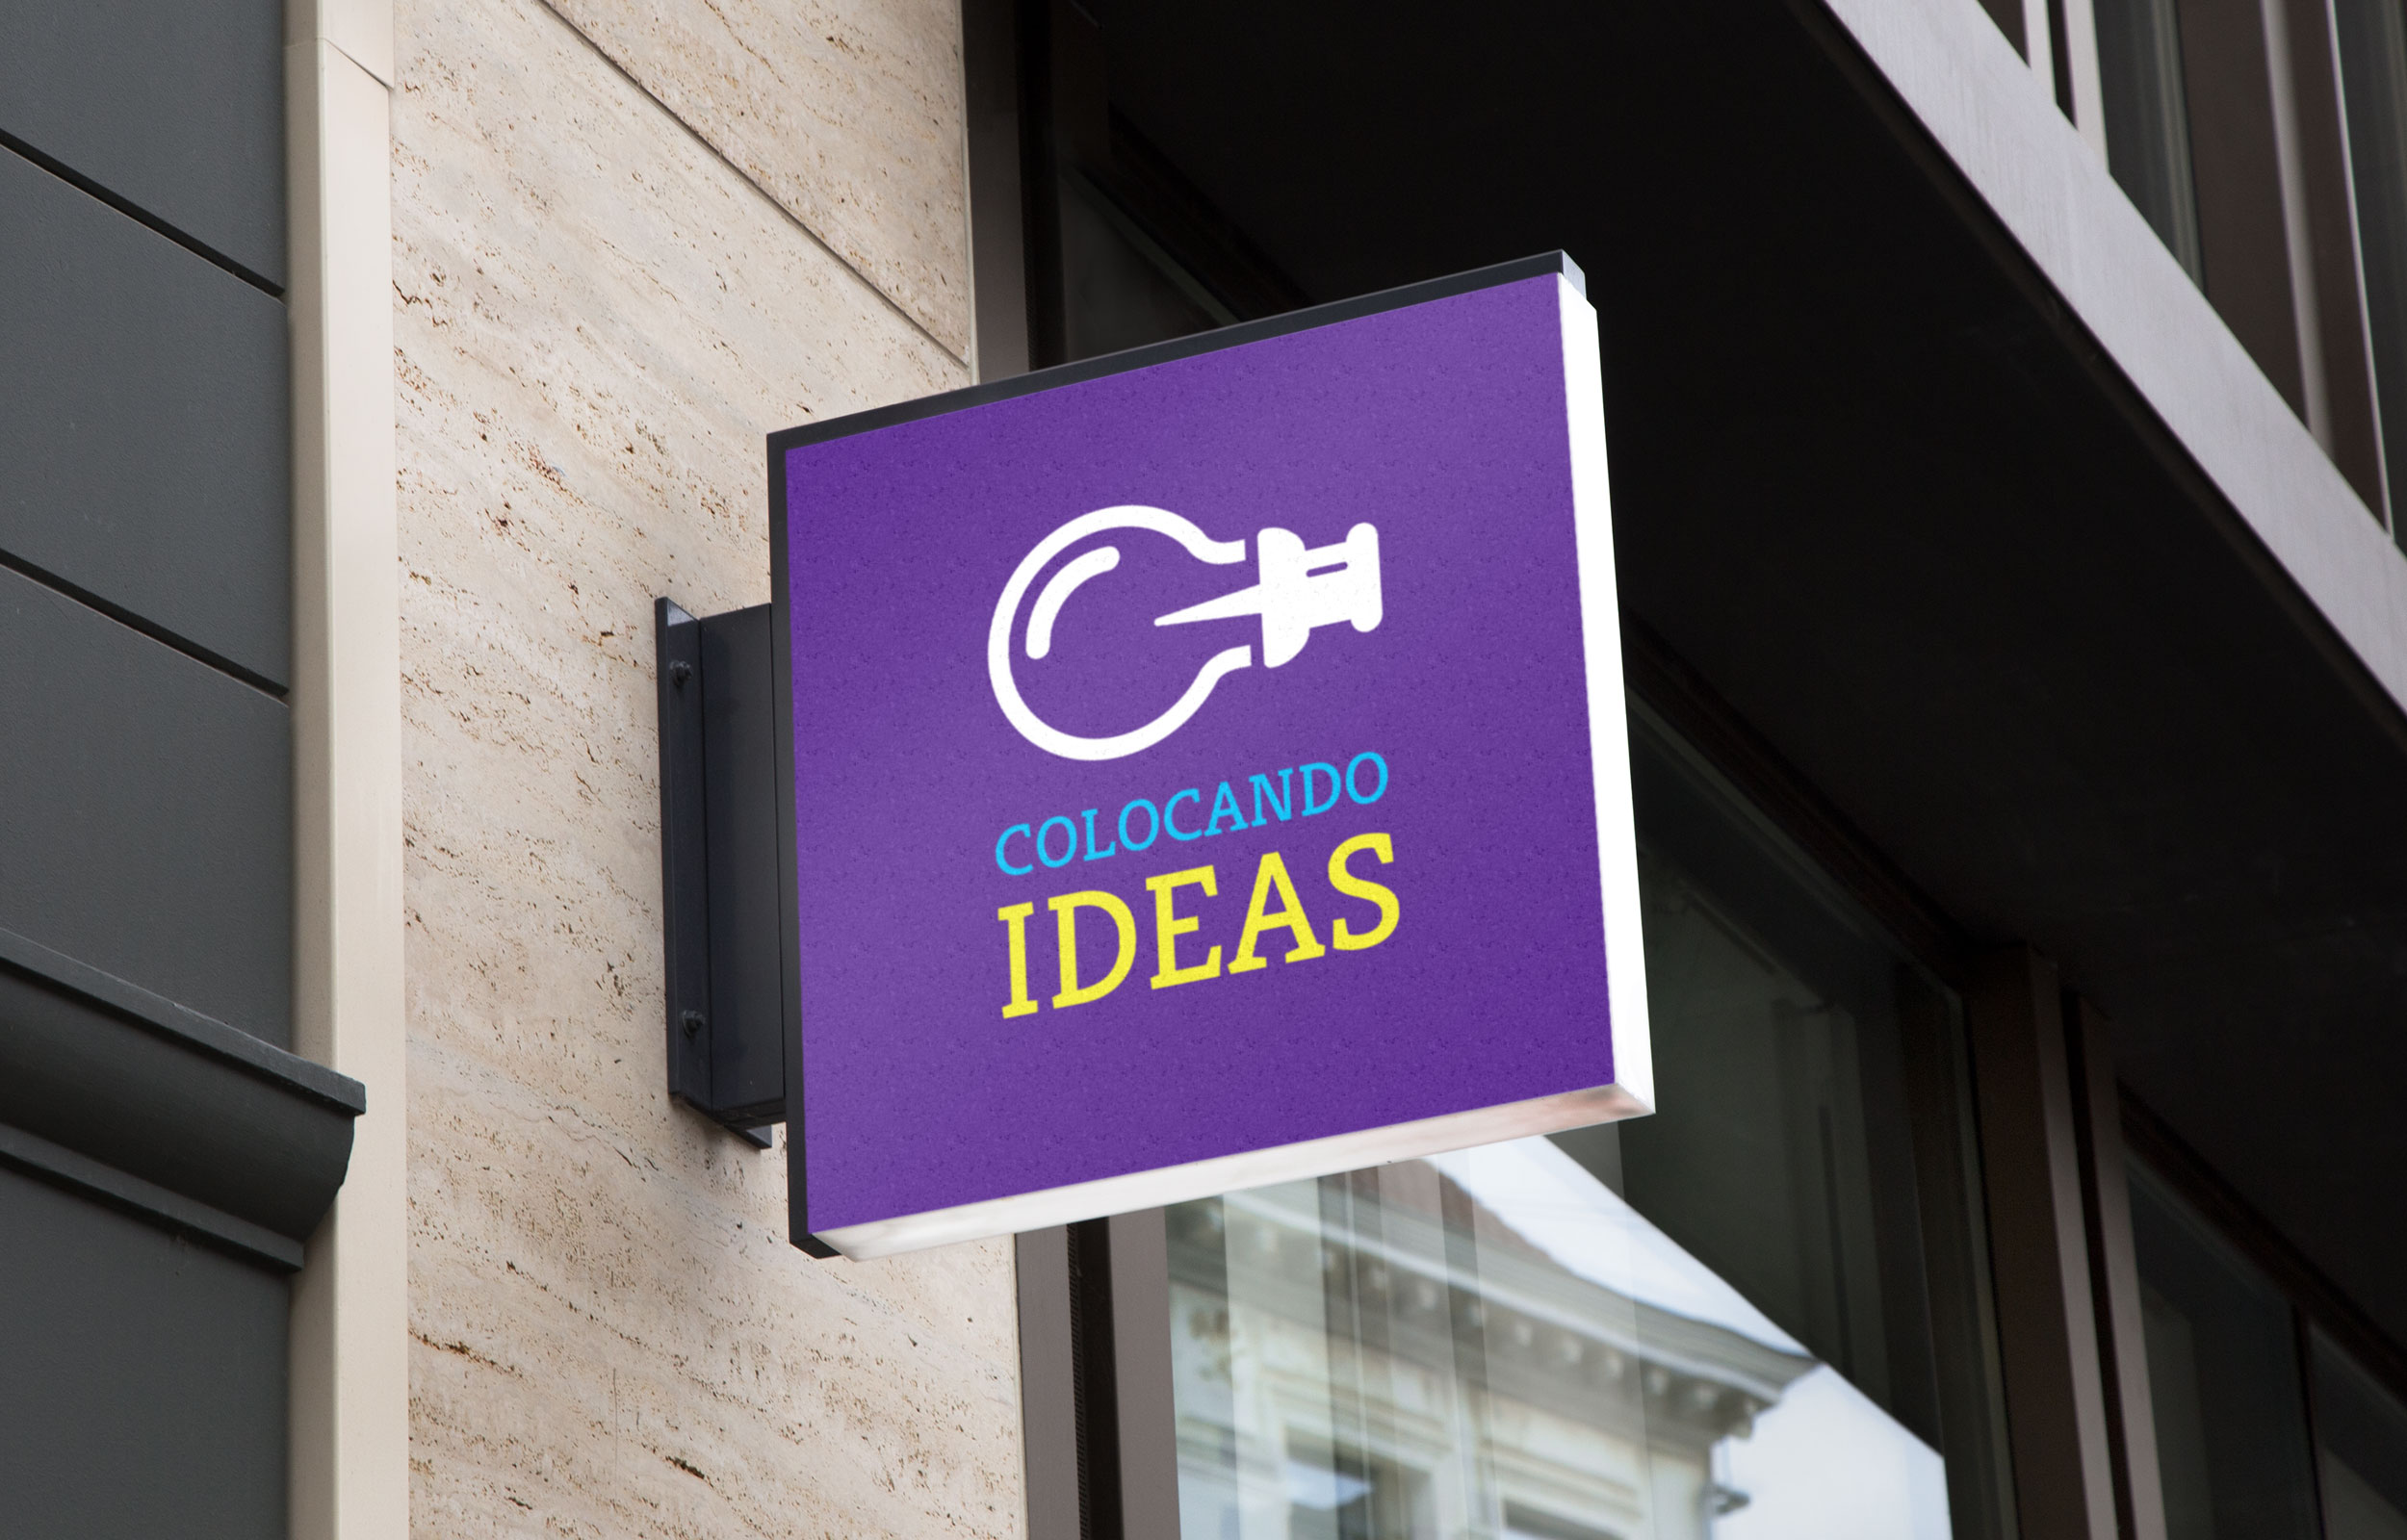 Propuesta de rótulo exterior corporativo para empresa de marketing y comunicación Colocando ideas, México